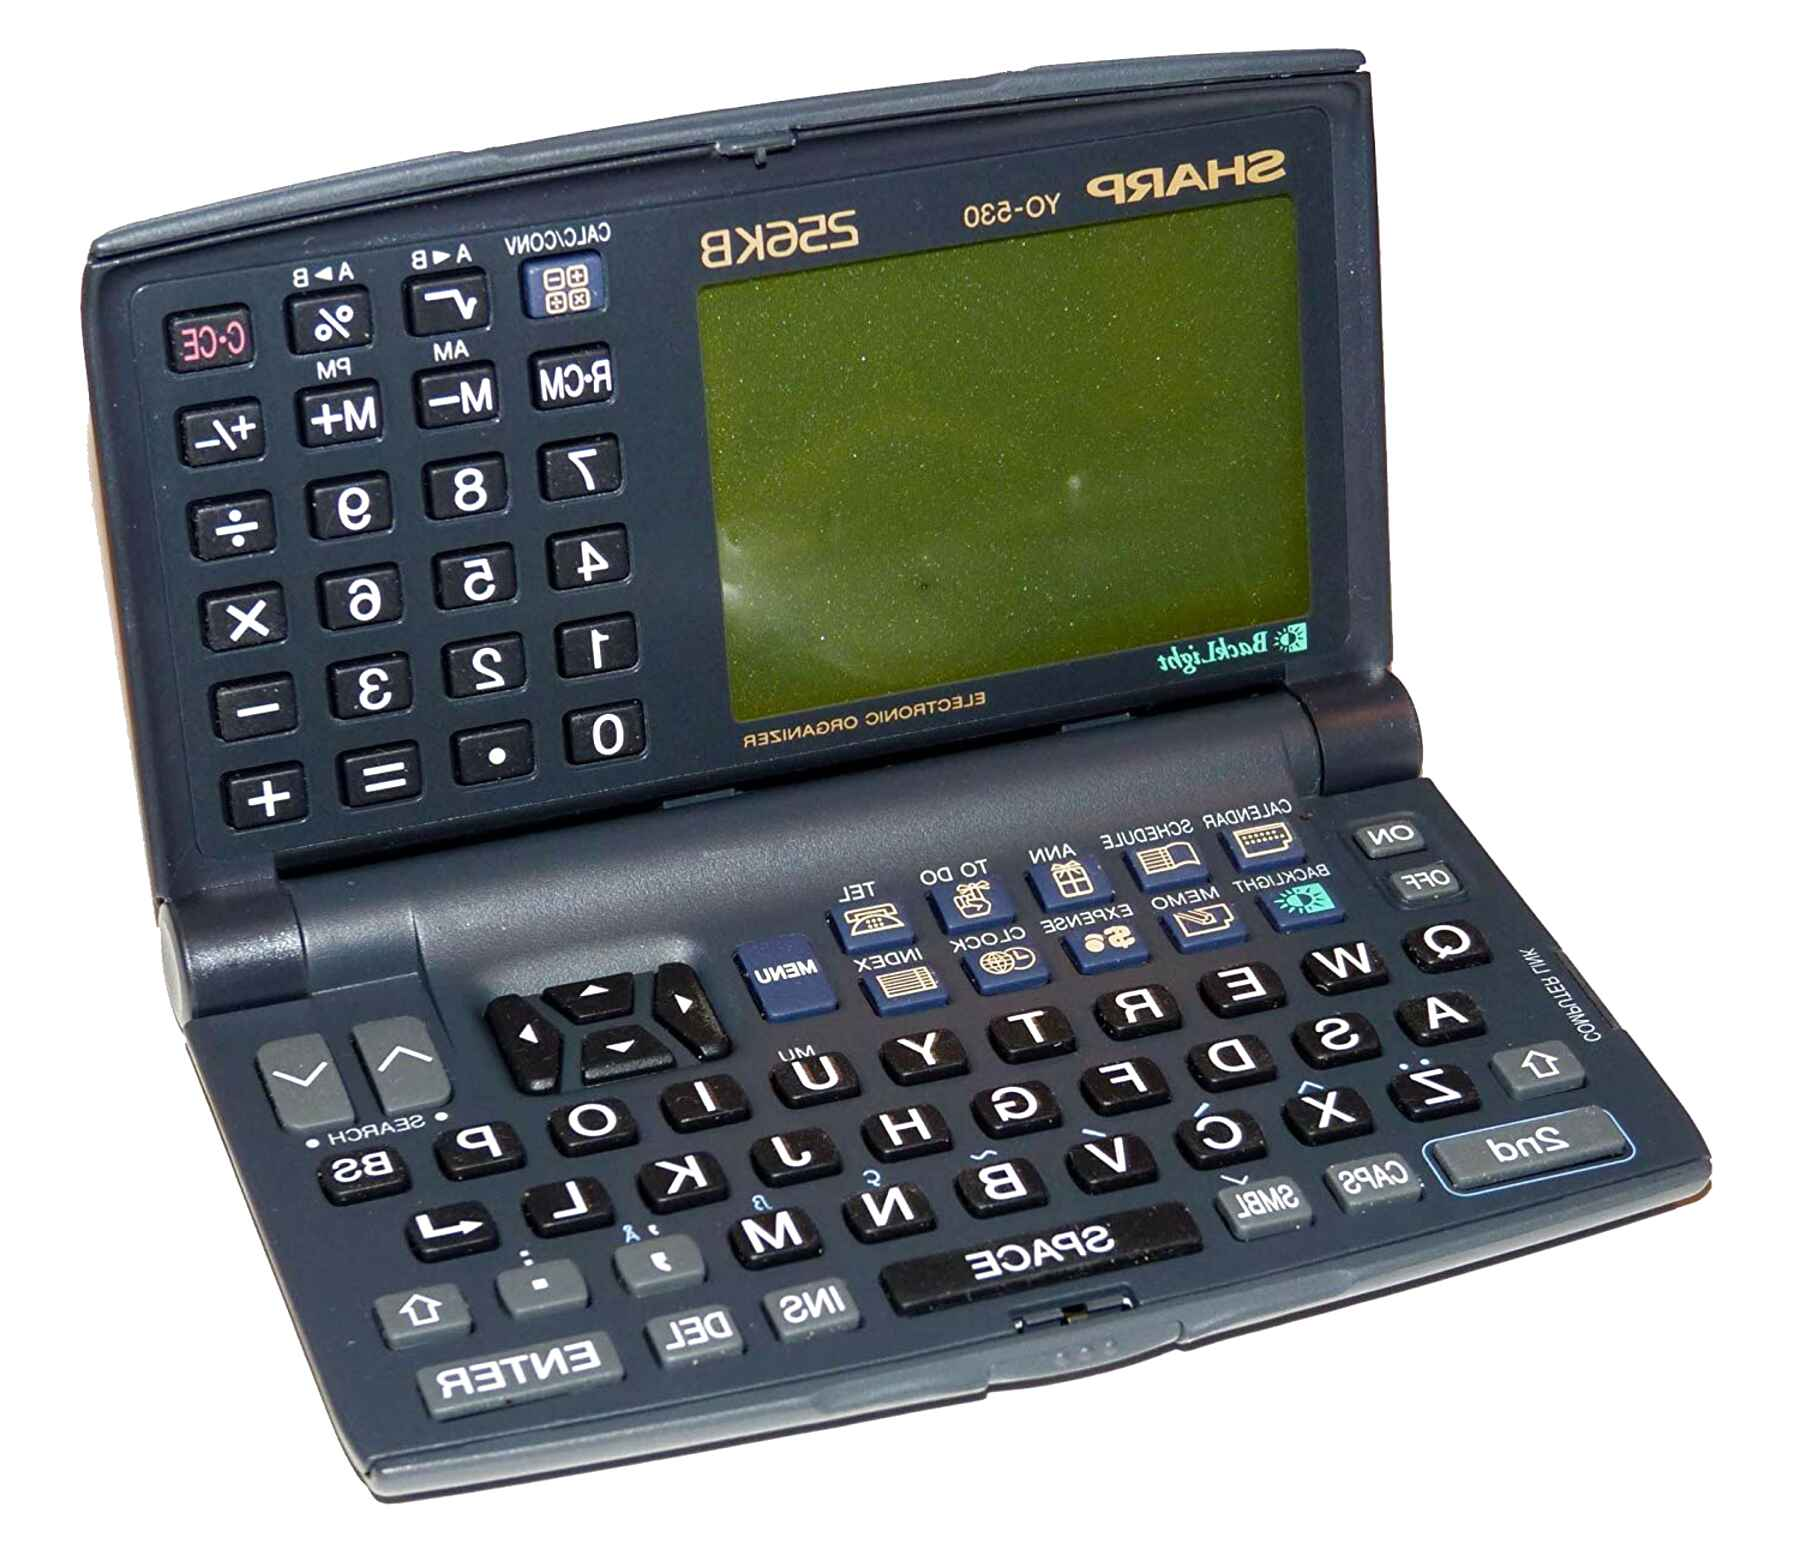 Sharp Electronic Organizer for sale in UK  View 30 ads